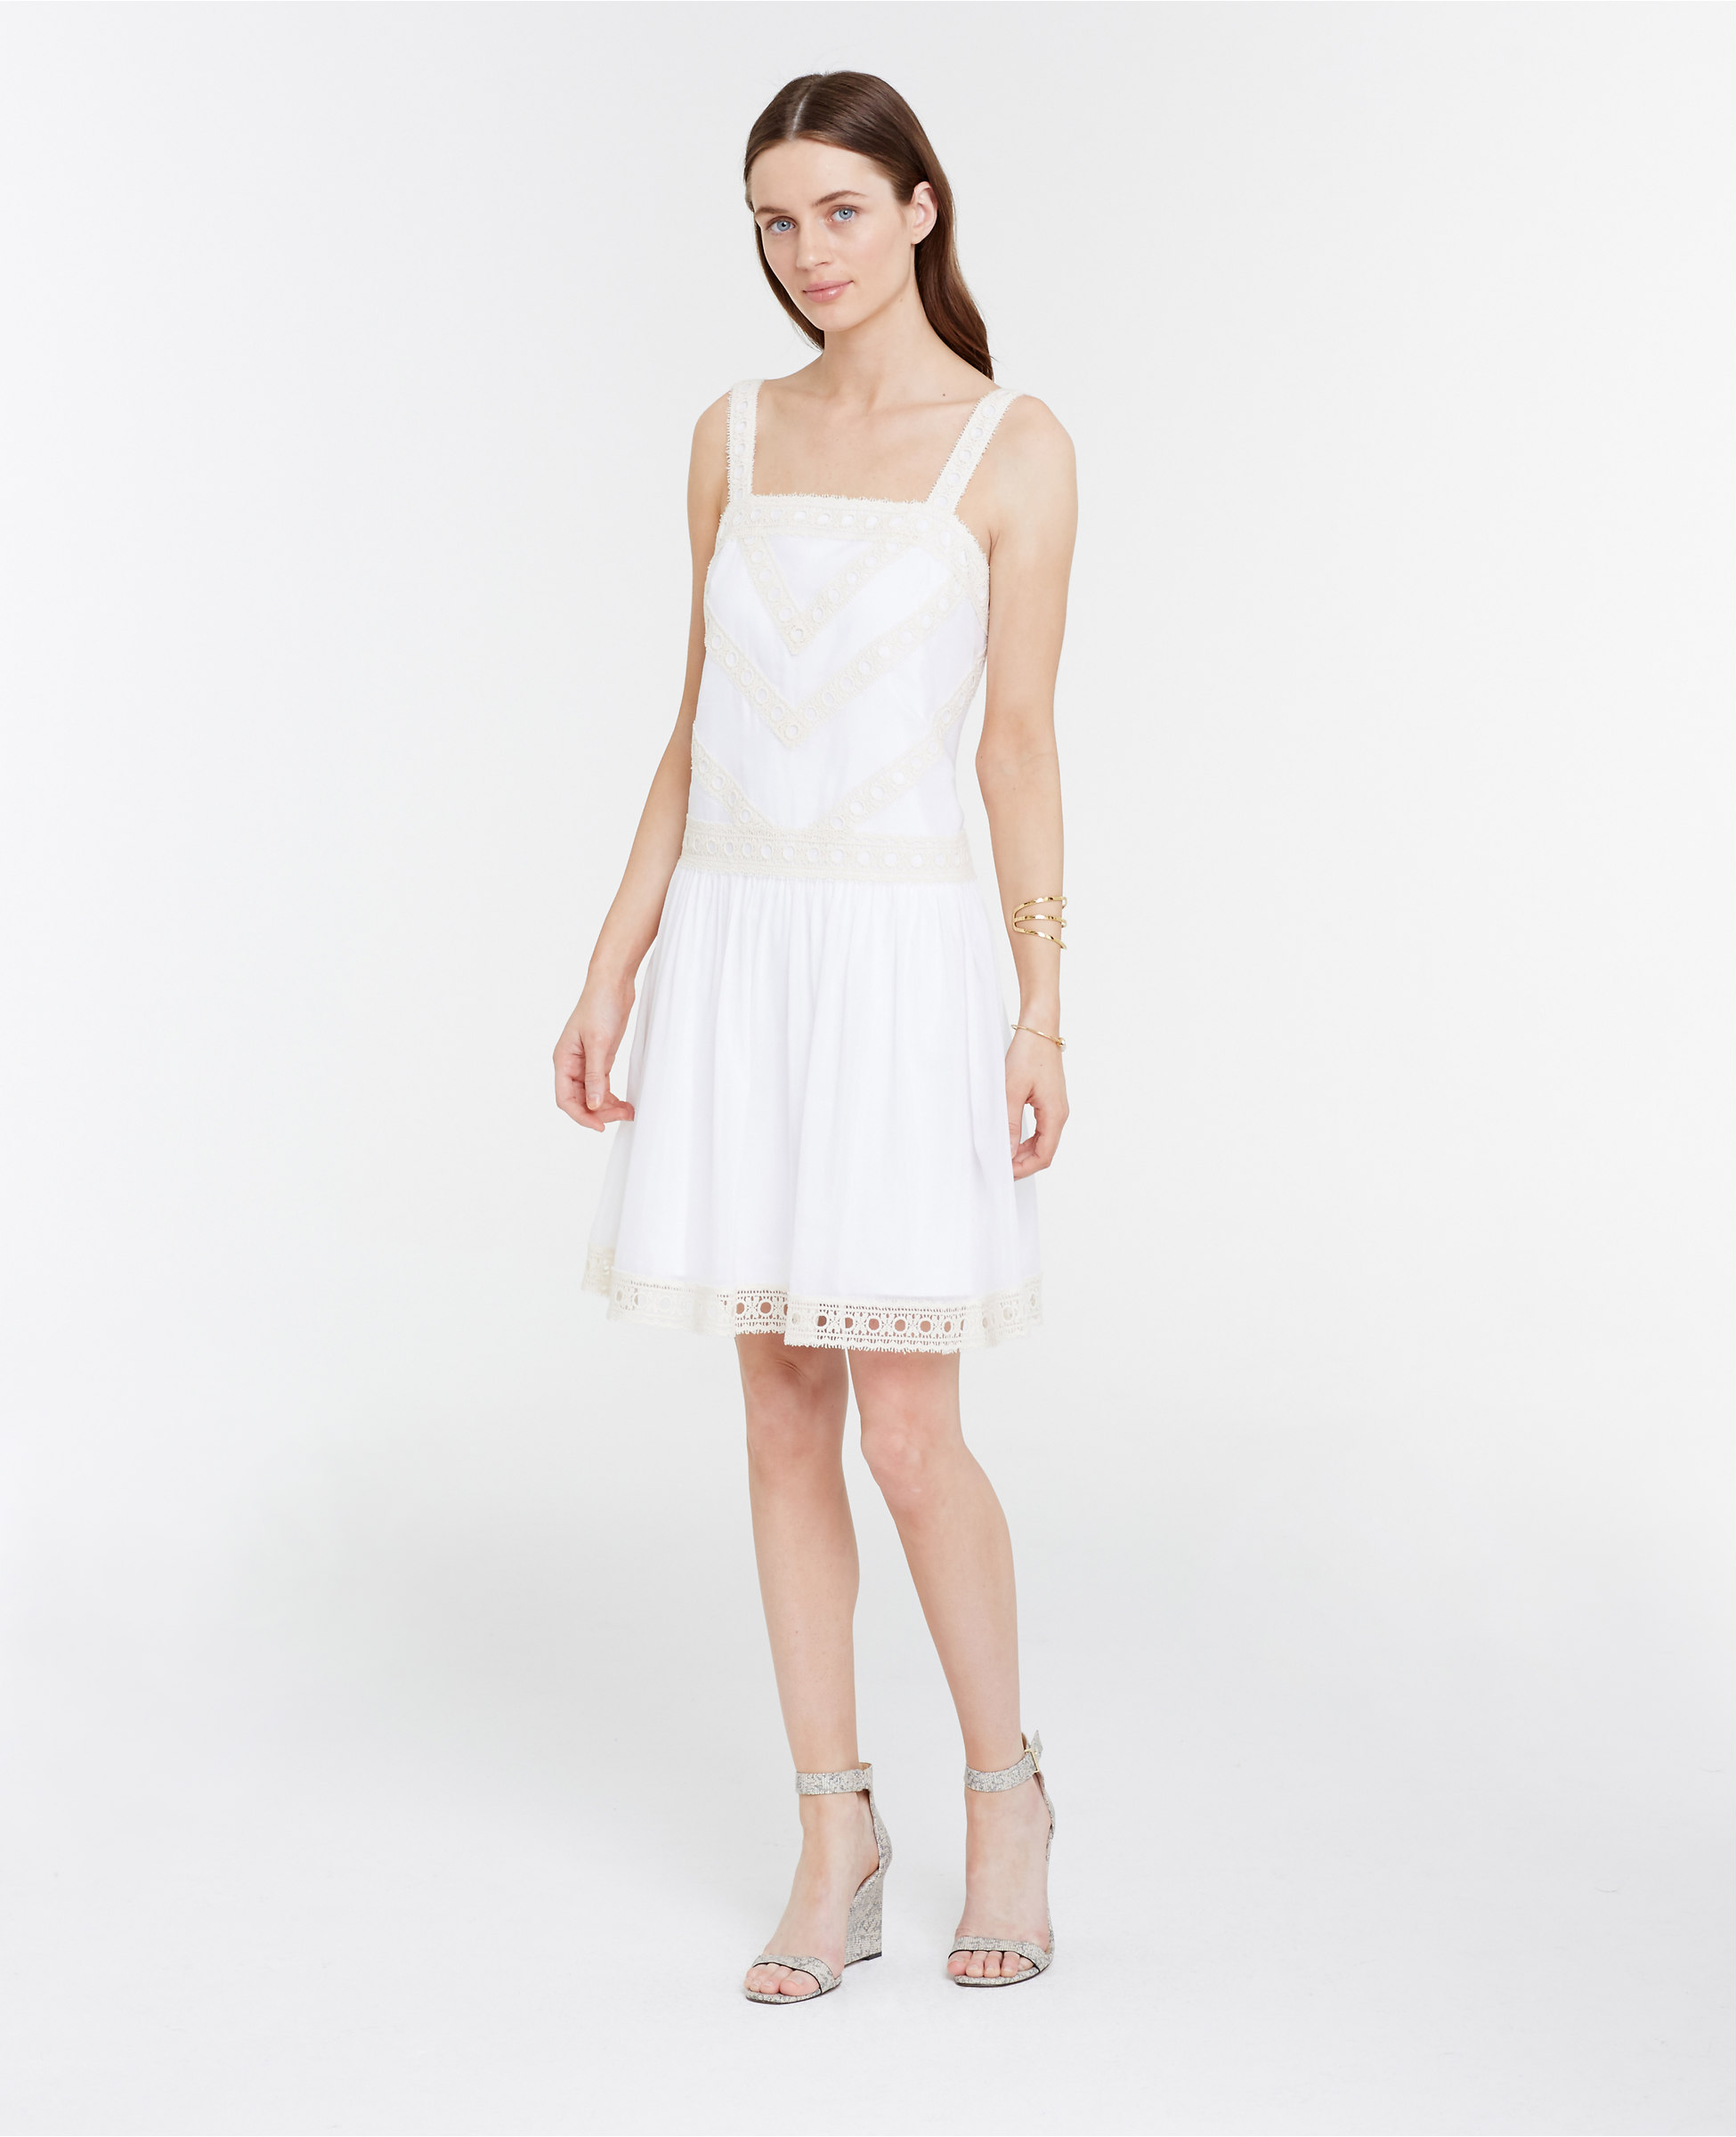 What To Wear To A White Party - Life In Pleasantville